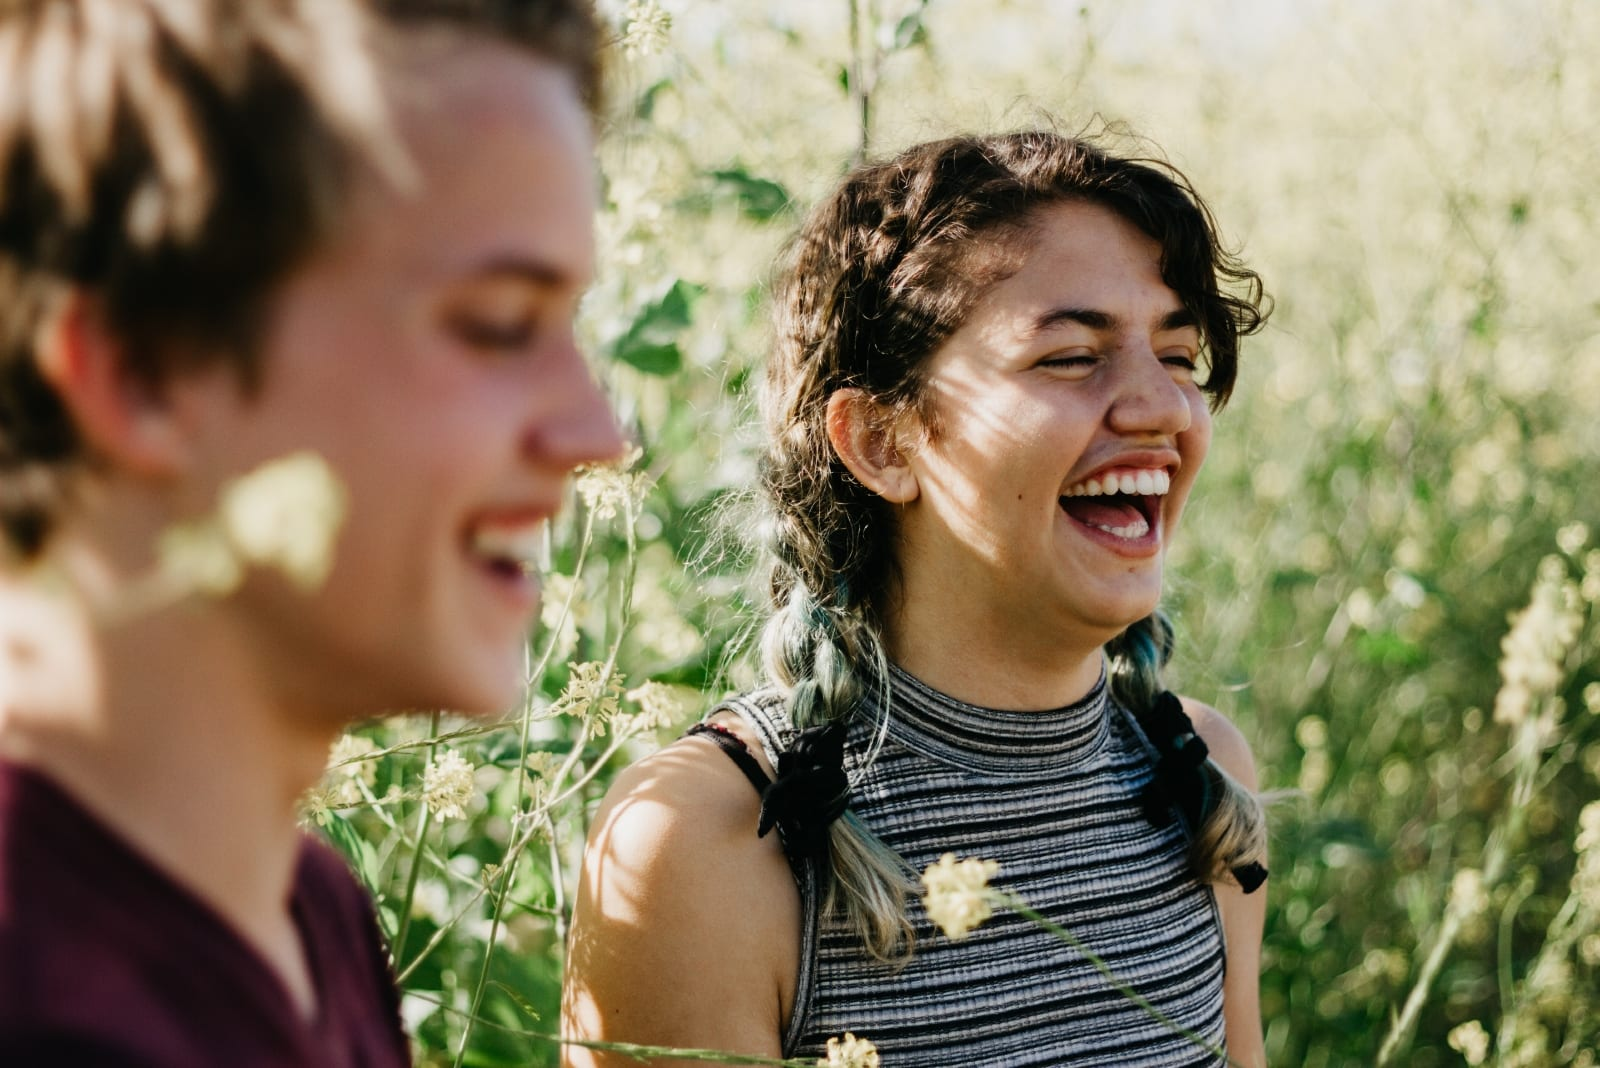 man and woman laughing surrounded with green grass